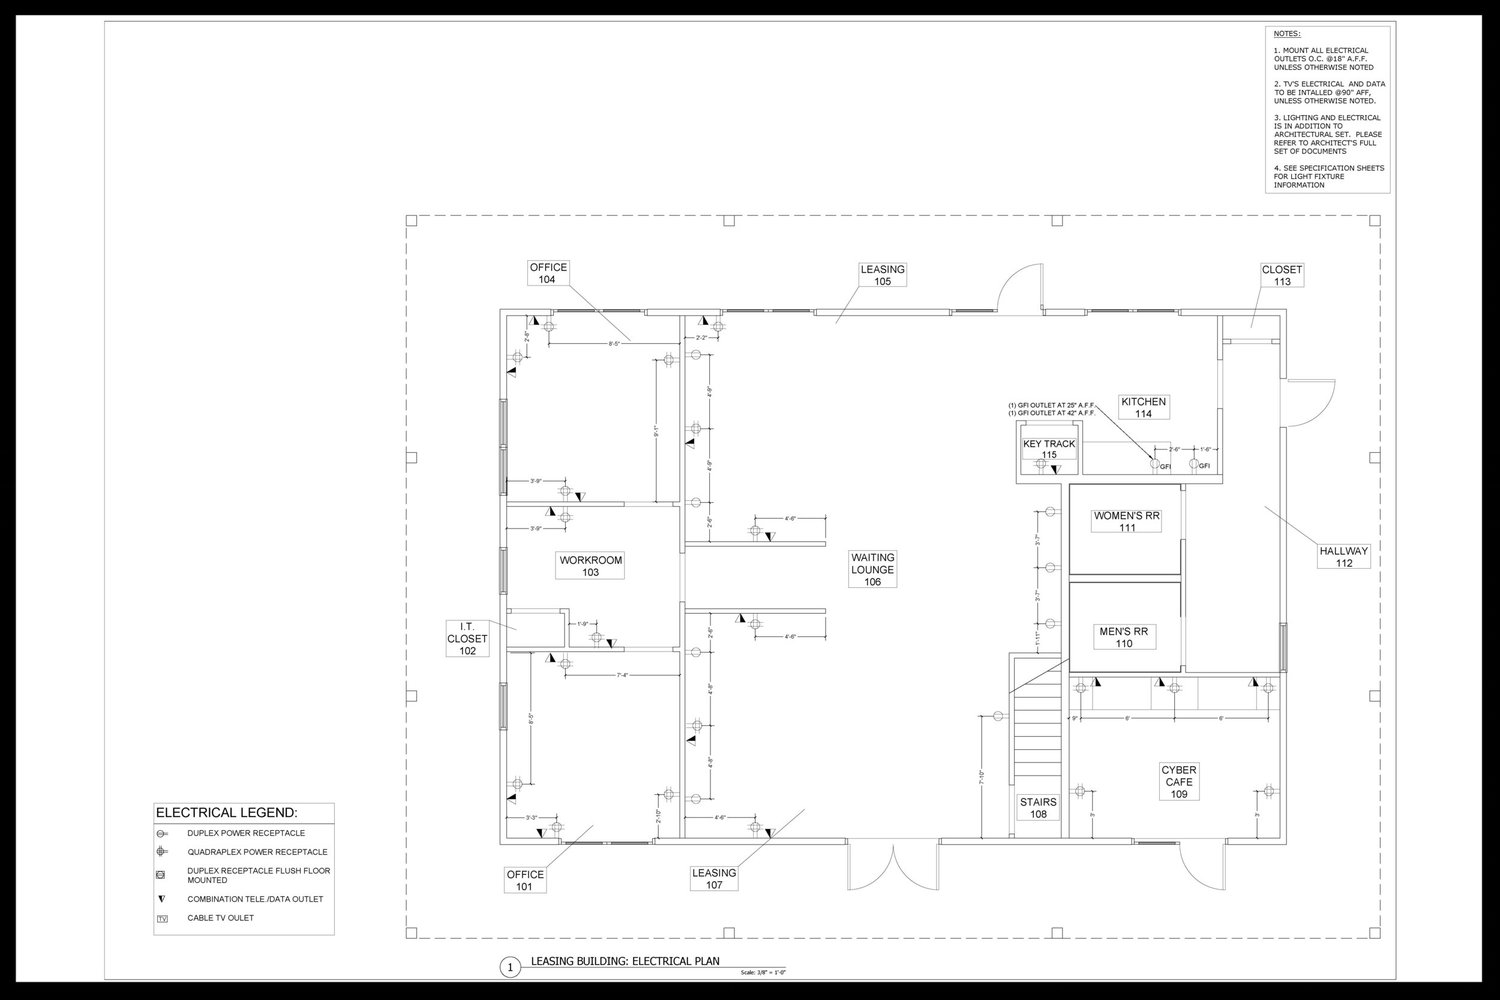 Canterbury Apartments Lydia Mendenhall Set 3 Light Wire Schematic Prev Next